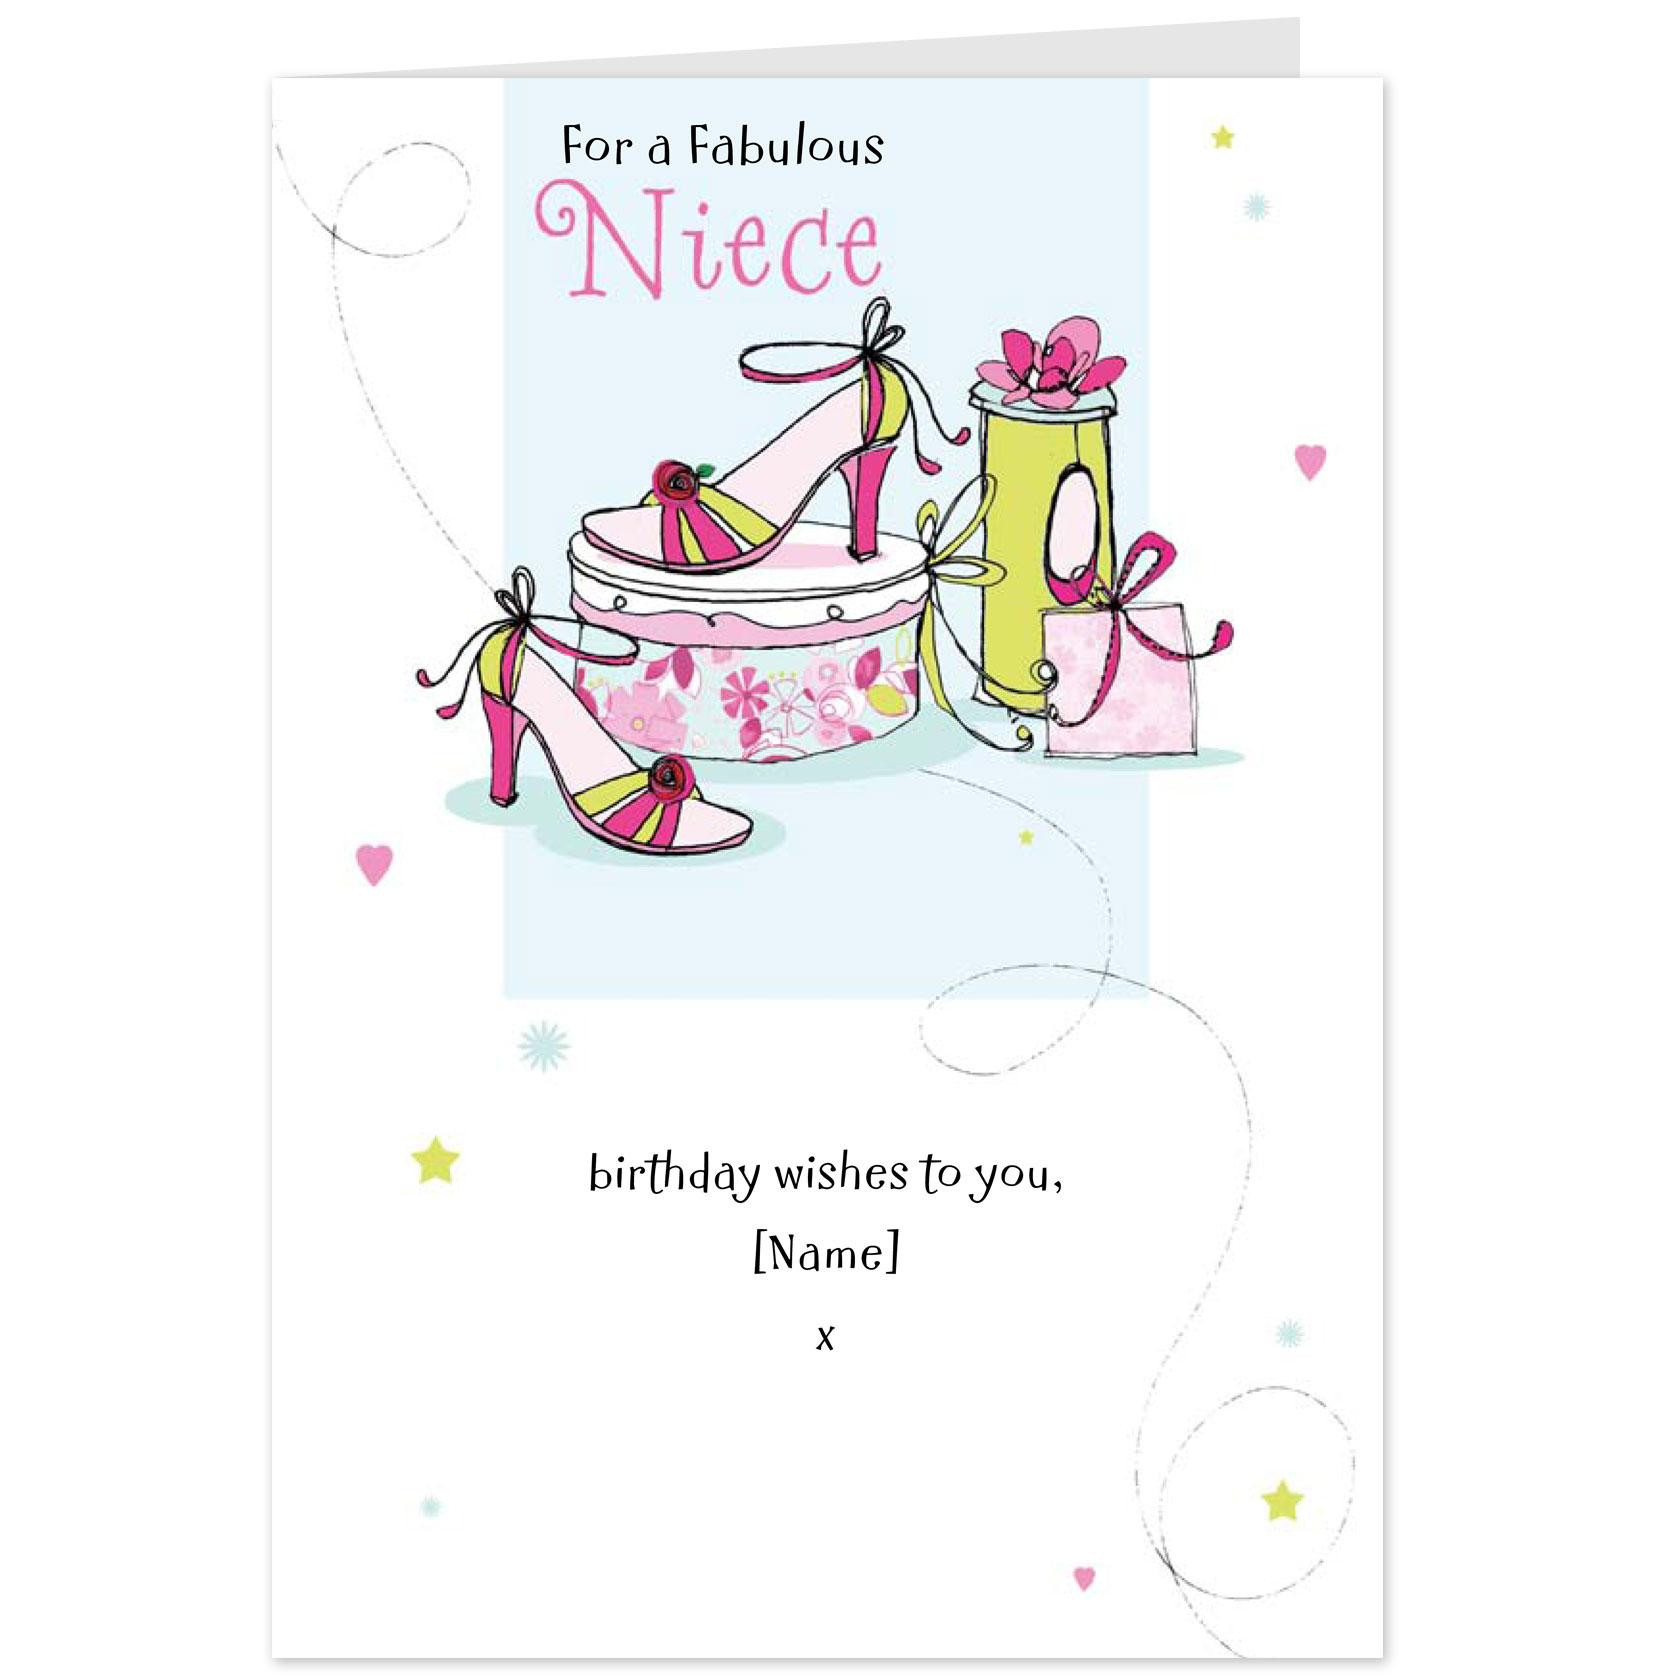 Inspirational Birthday Wishes For A Niece  Fun Birthday Quotes For Niece QuotesGram